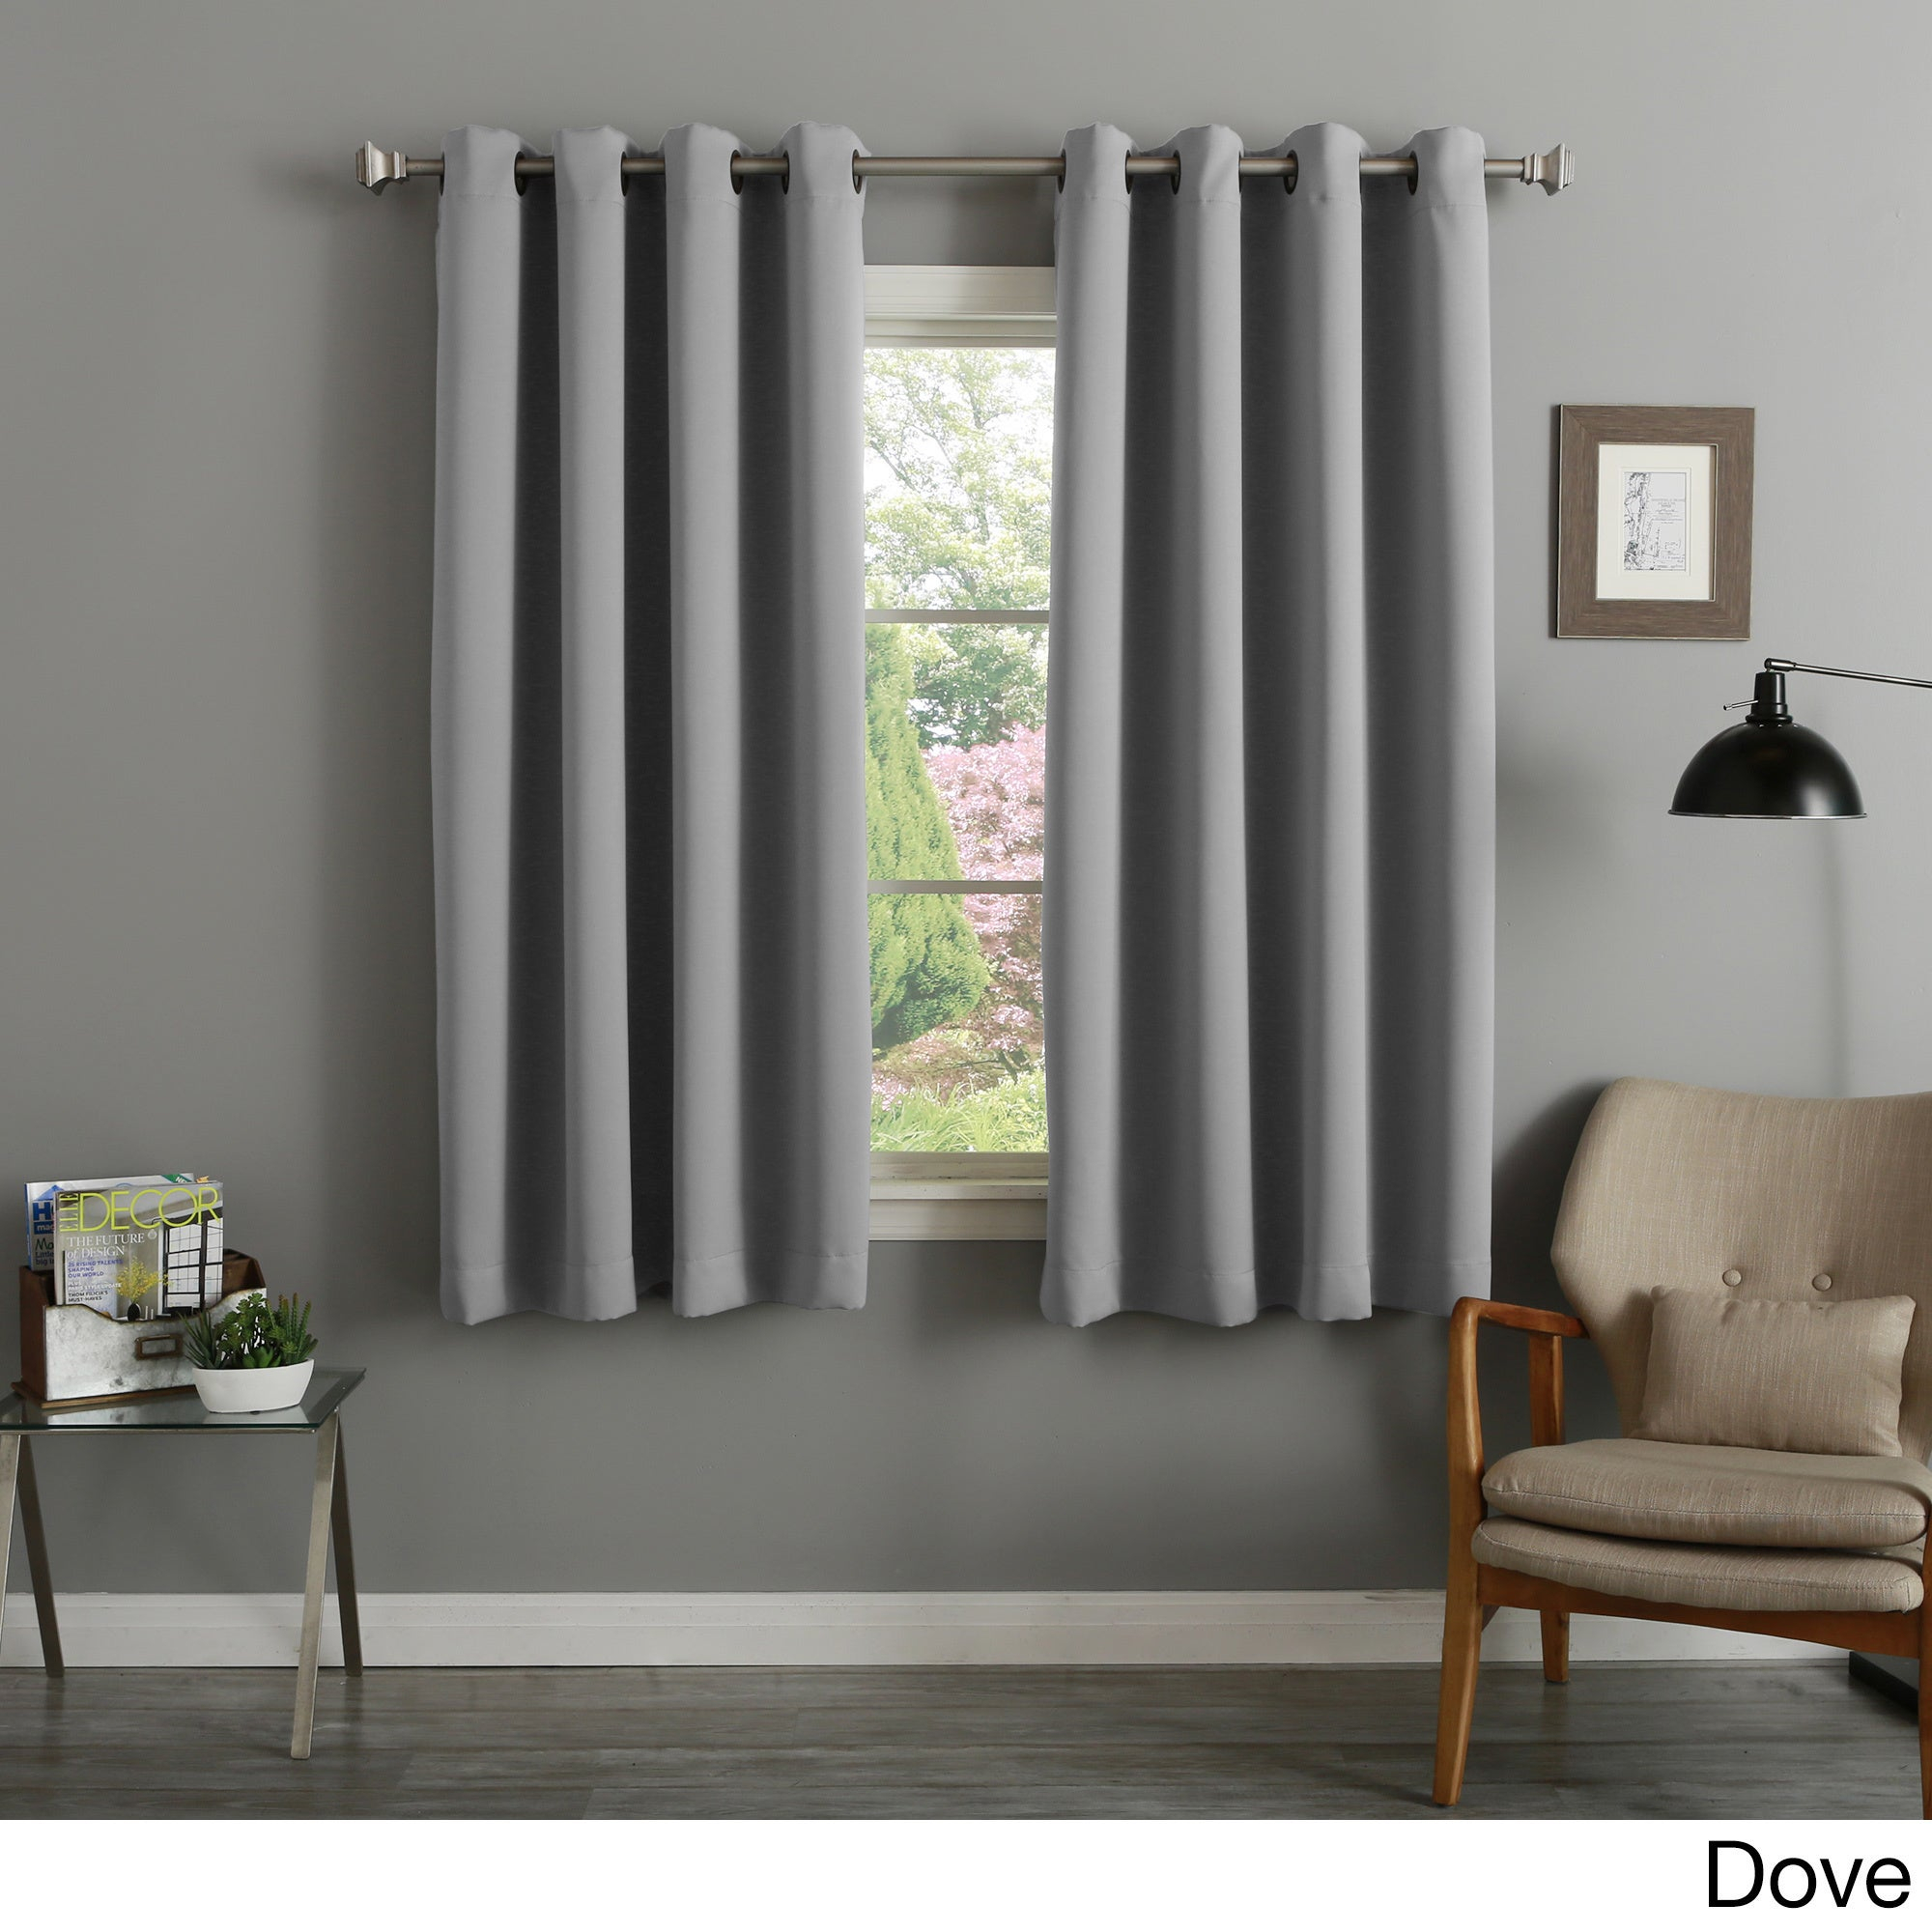 Aurora Home 54 Inch Thermal Insulated Blackout Curtain Panel Pair – 52 X 54 For Grommet Top Thermal Insulated Blackout Curtain Panel Pairs (View 8 of 20)